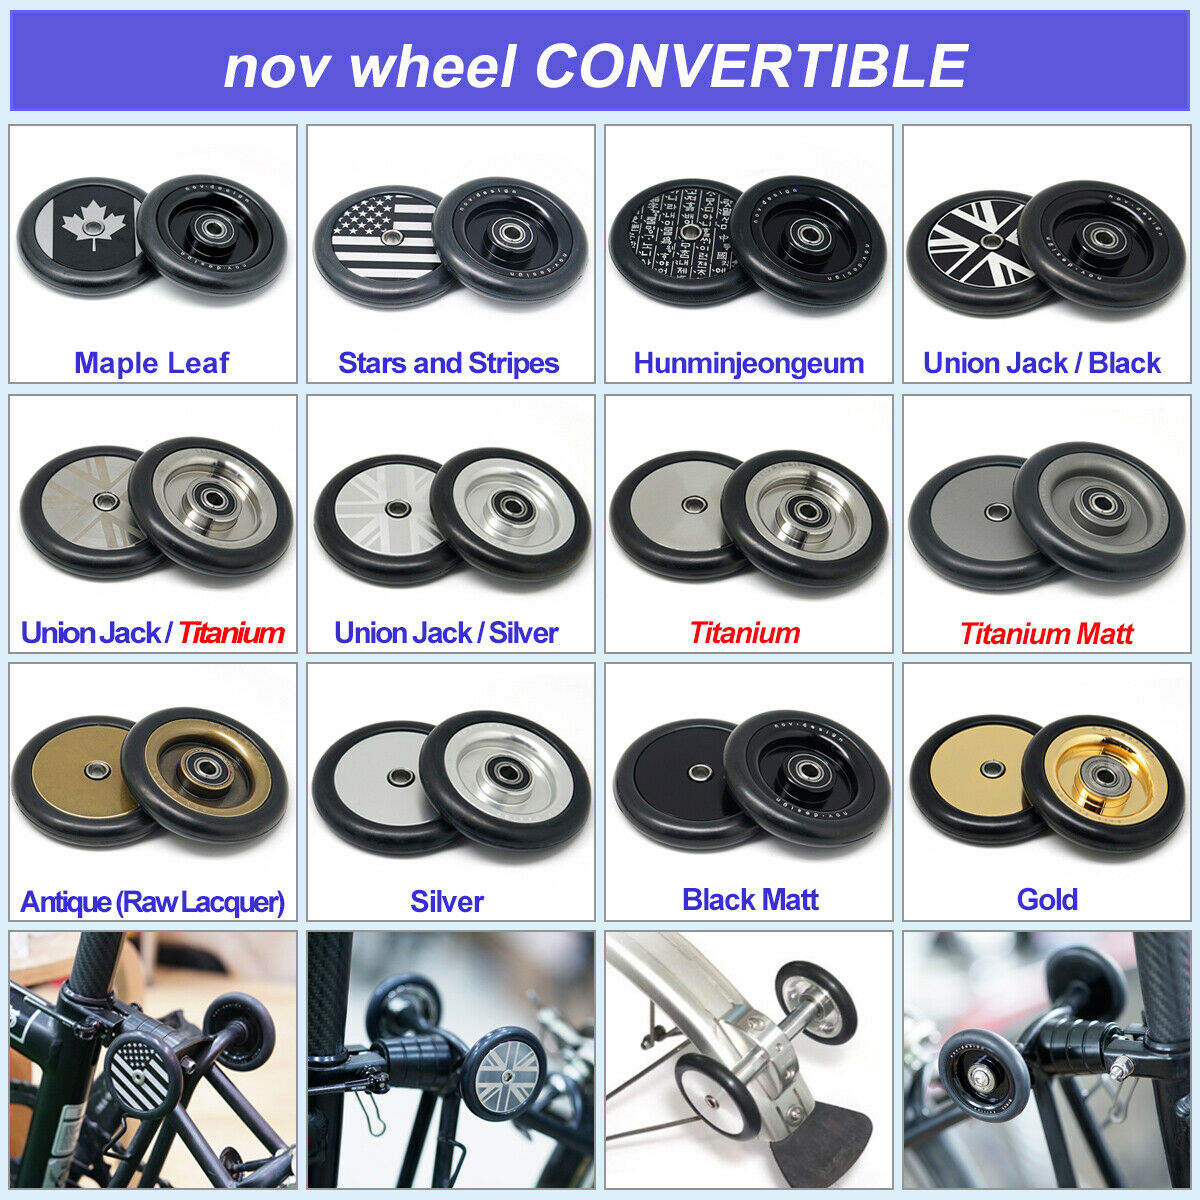 Nov Wheel CONverdeIBLE  light weight easy wheel for Brompton both side